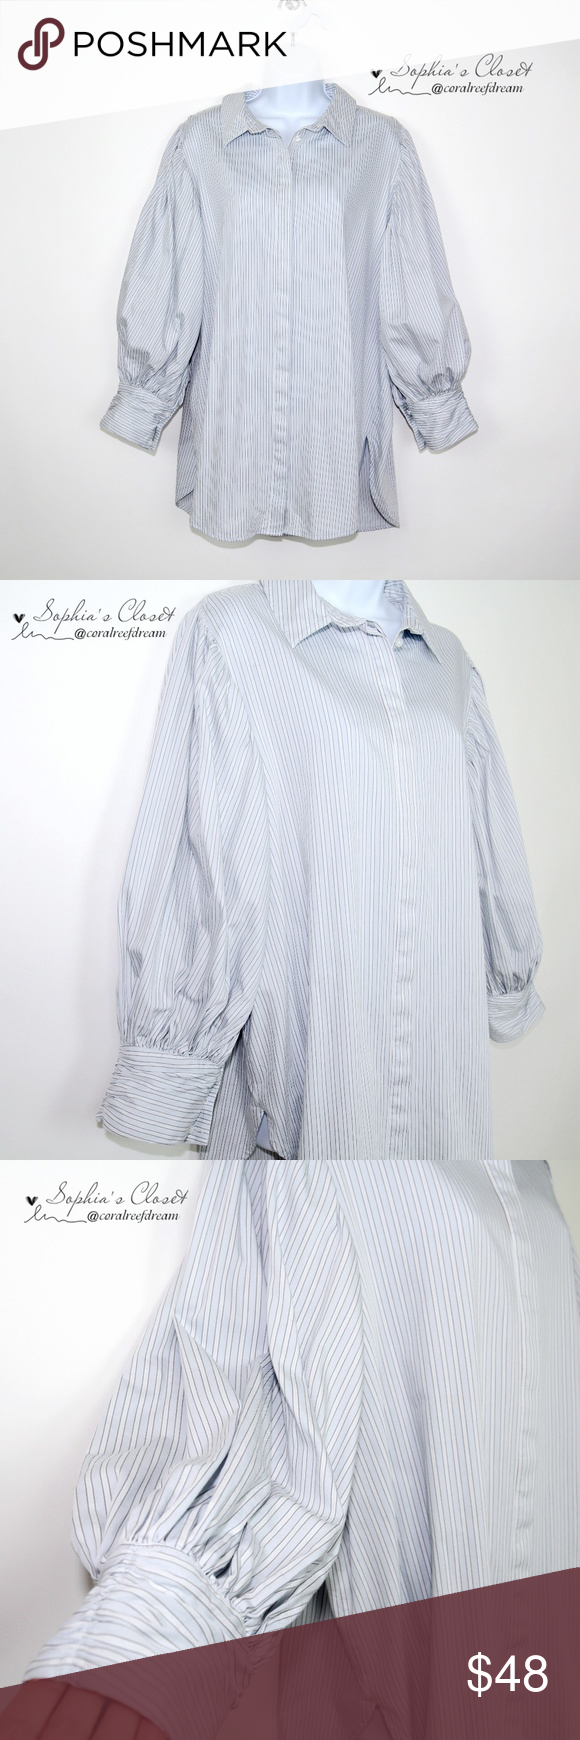 f1cb72e5 Something Navy Striped Long Puff Sleeve Blouse - Barely used, in great  condition - Size XL - 100% cotton - Shoulder to shoulder 16.5